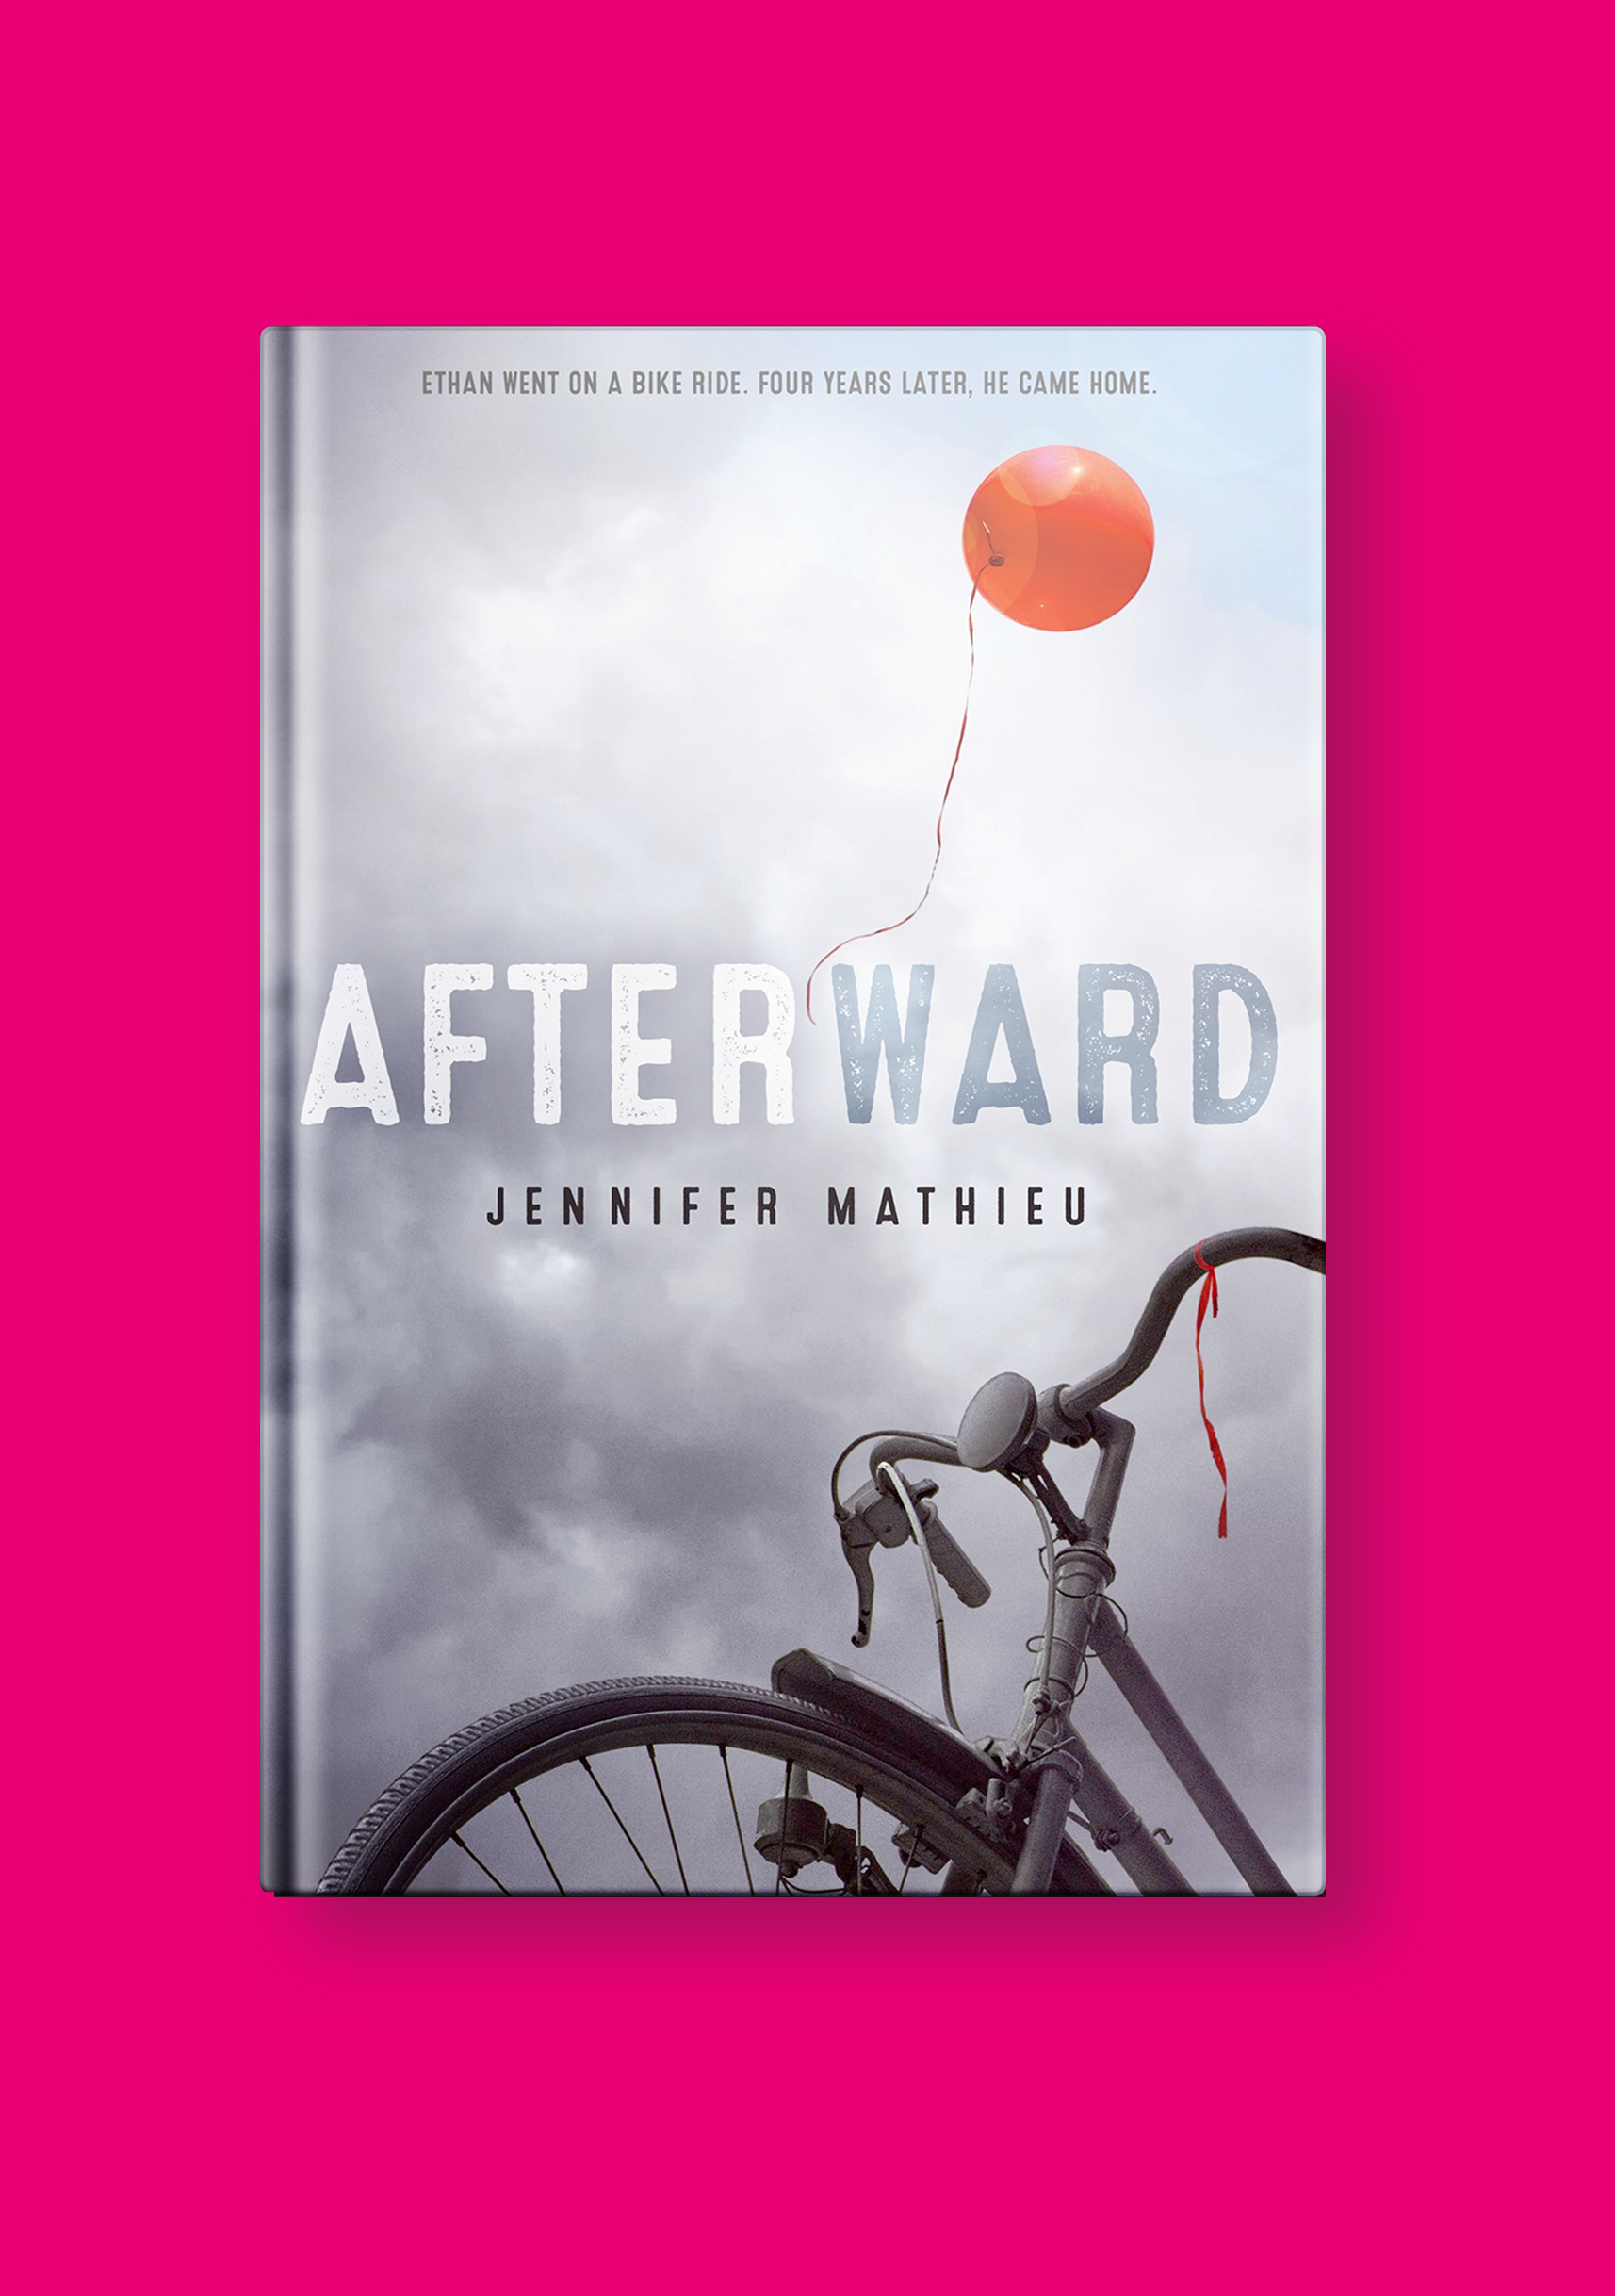 AFTERWARD - After a terrifying kidnapping connects them, Ethan and Caroline find they each need a friend - and their best option just might be each other.